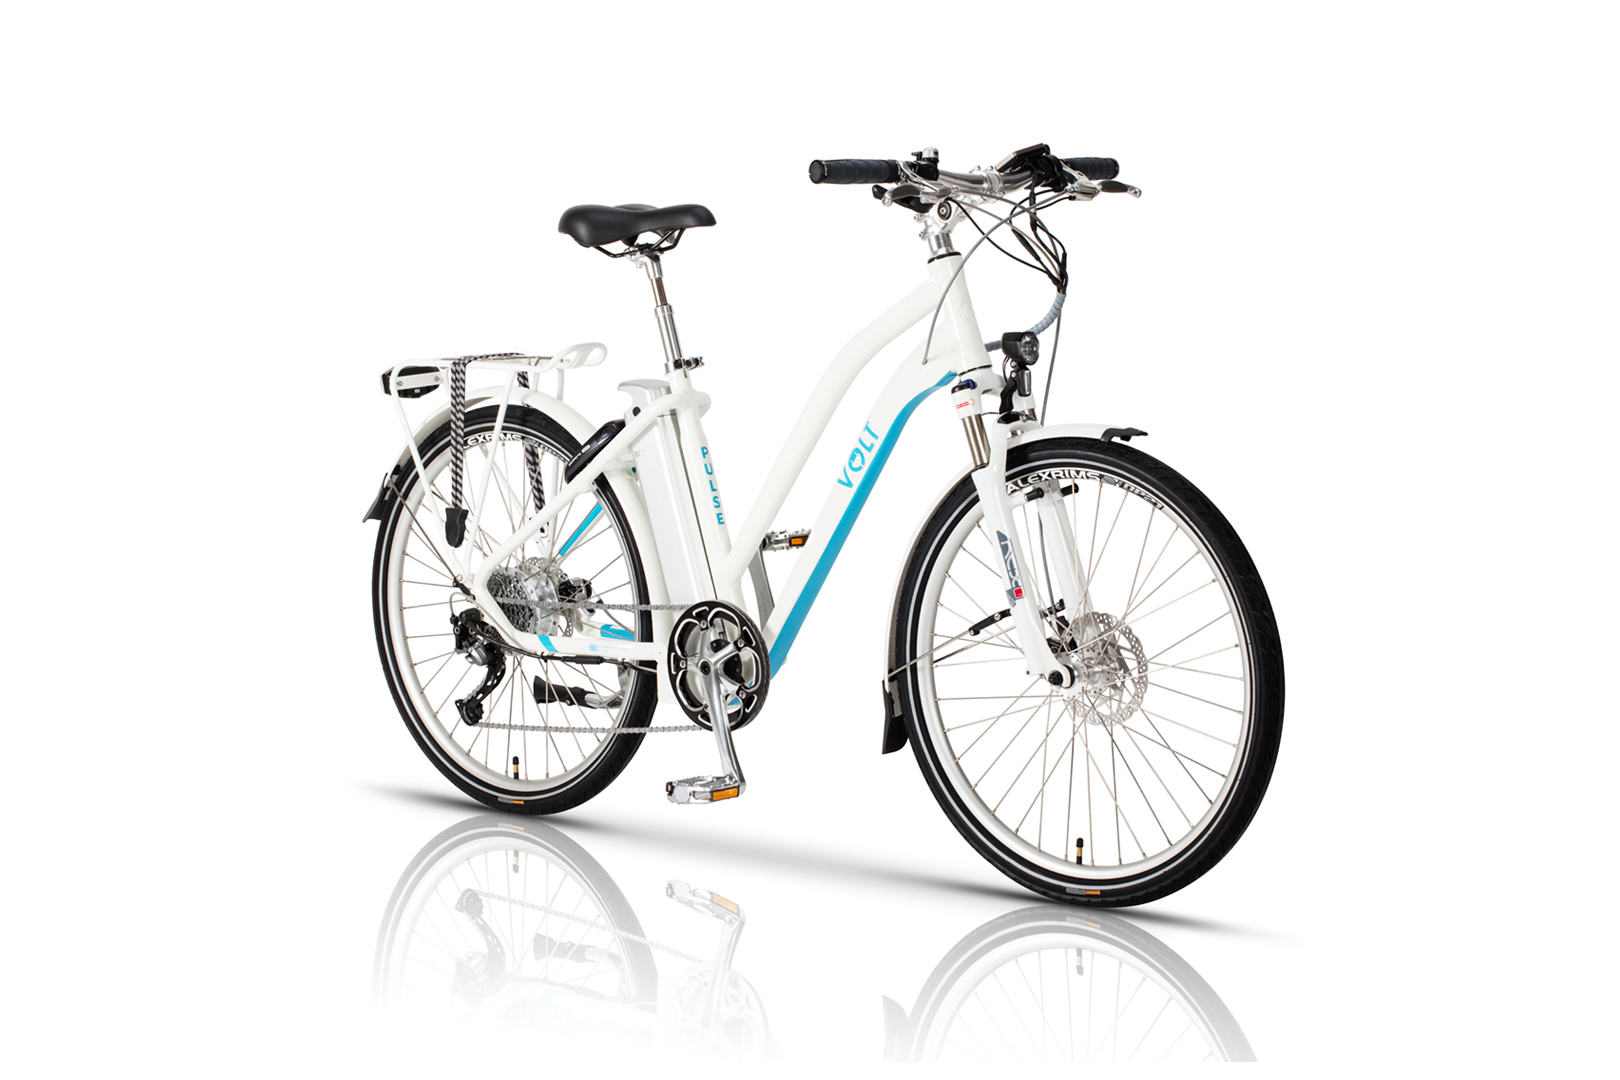 VOLT™ Pulse LS electric bike, studio photograph viewed at an angle with a white background